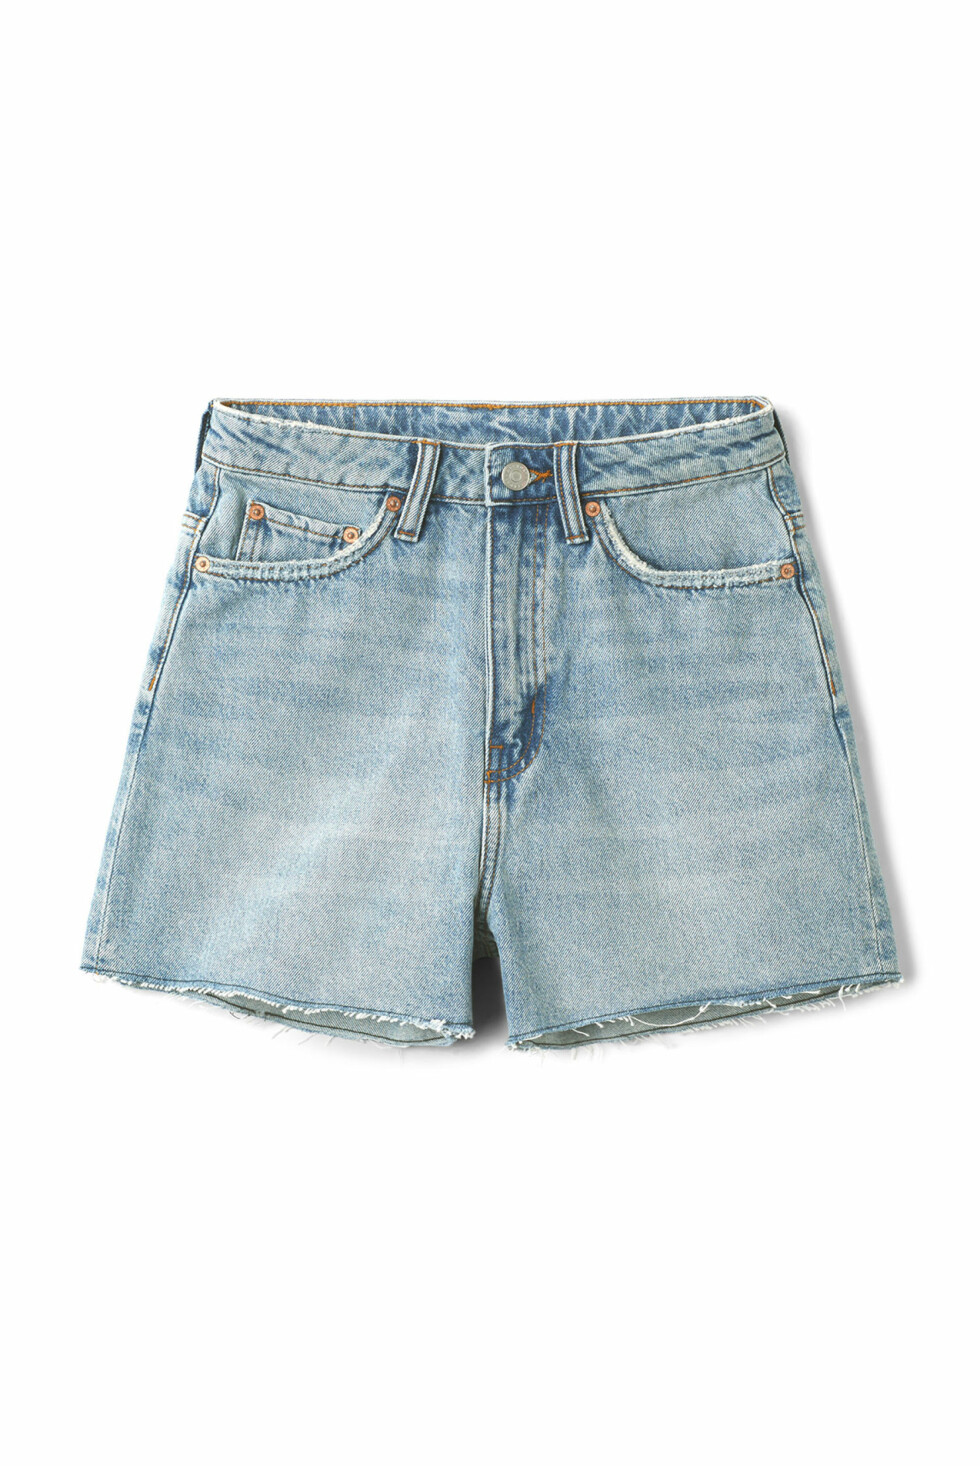 Shorts fra Weekday |400,-| https://www.weekday.com/en_sek/women/categories/shorts/product.row-spring-blue-shorts-blue.0591413001.html